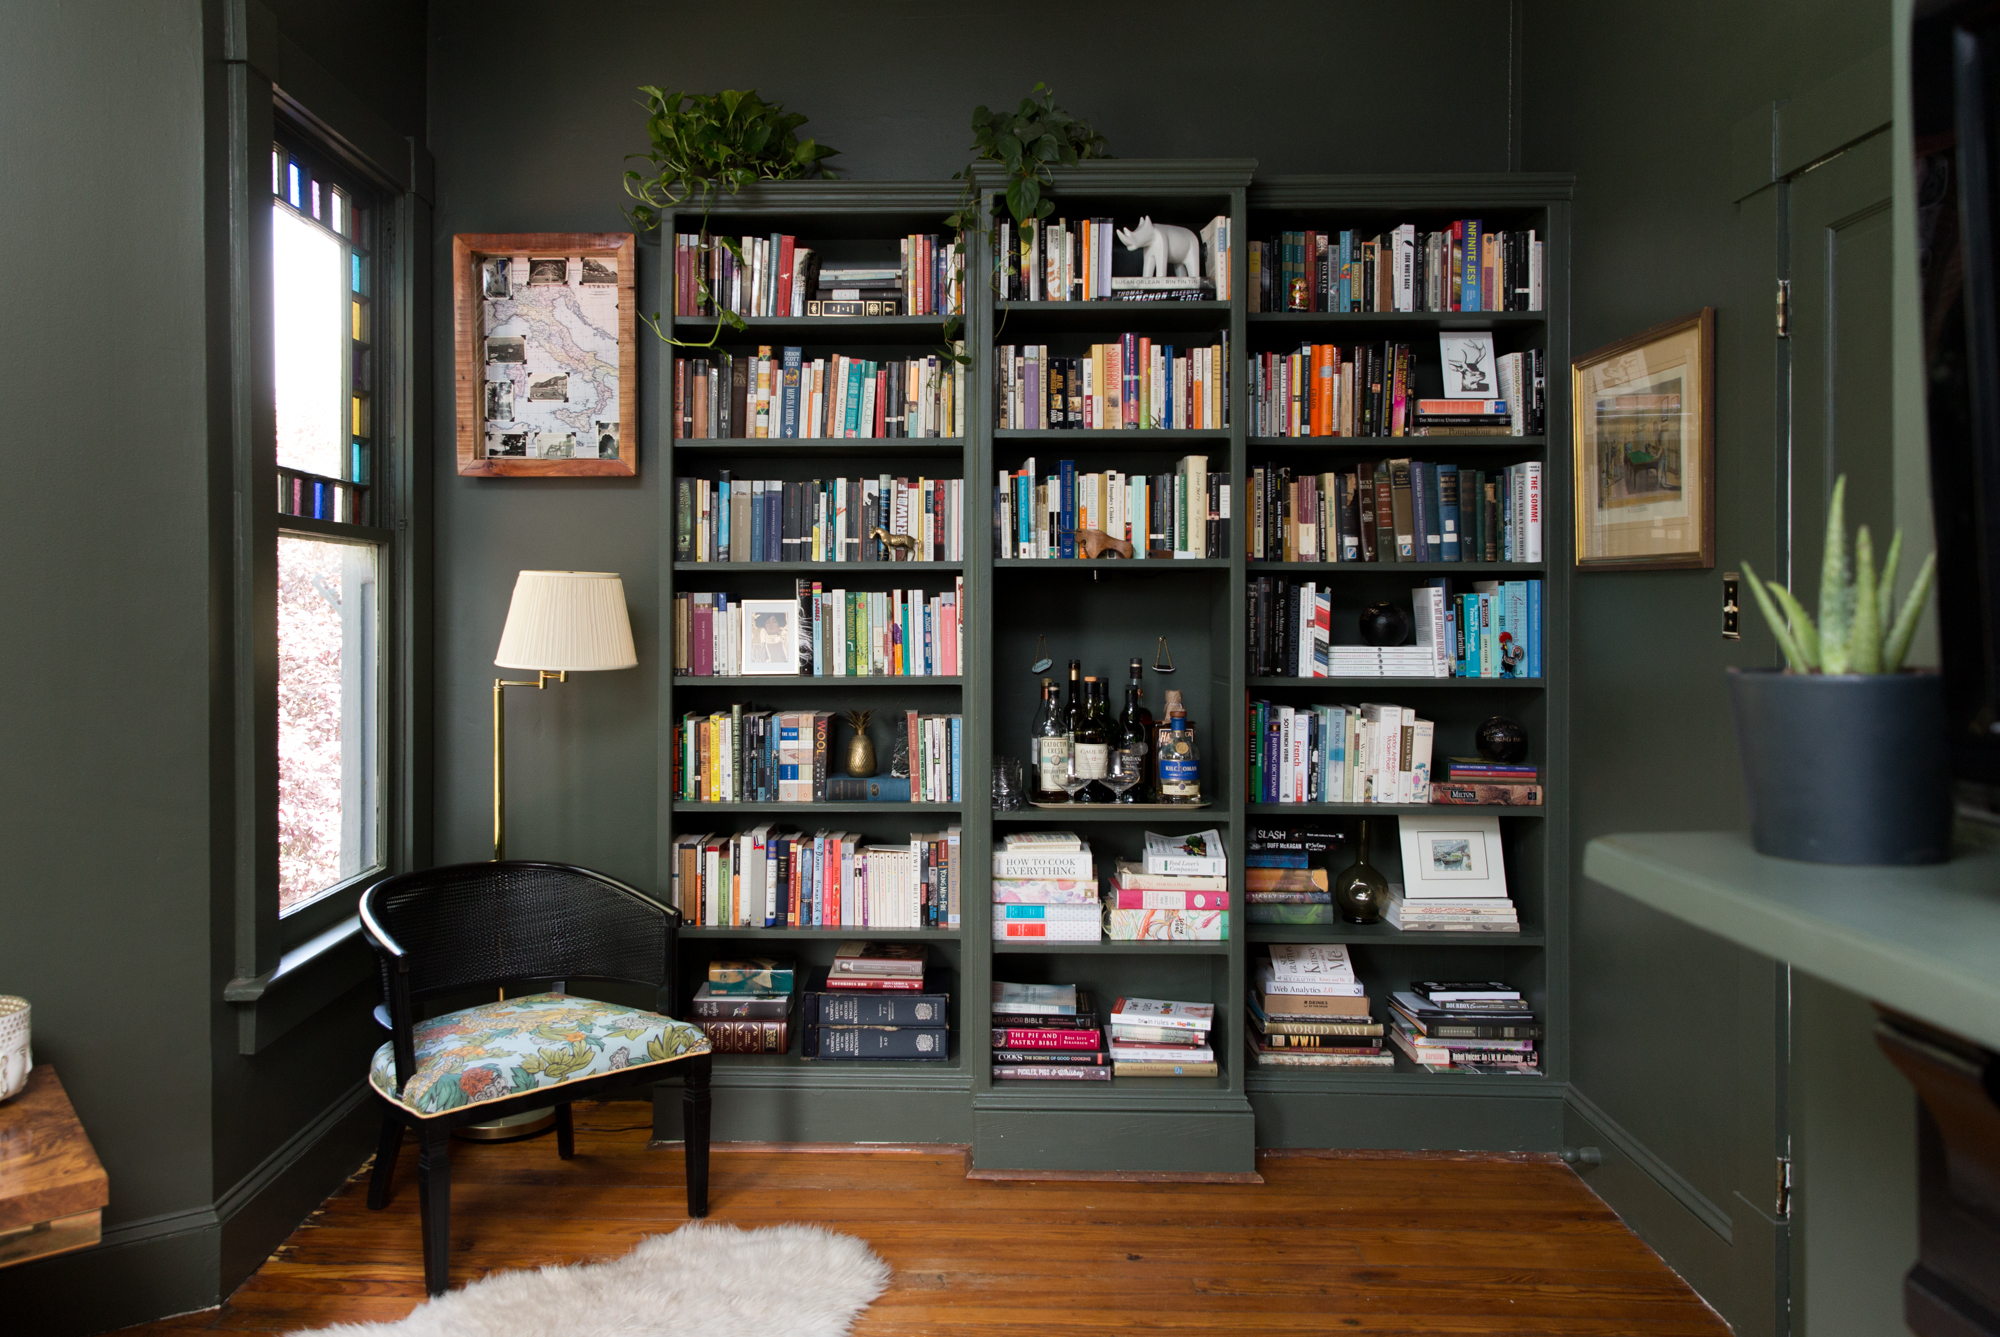 12 Small Living Room Ideas   How to Design & Decorate a Small ...